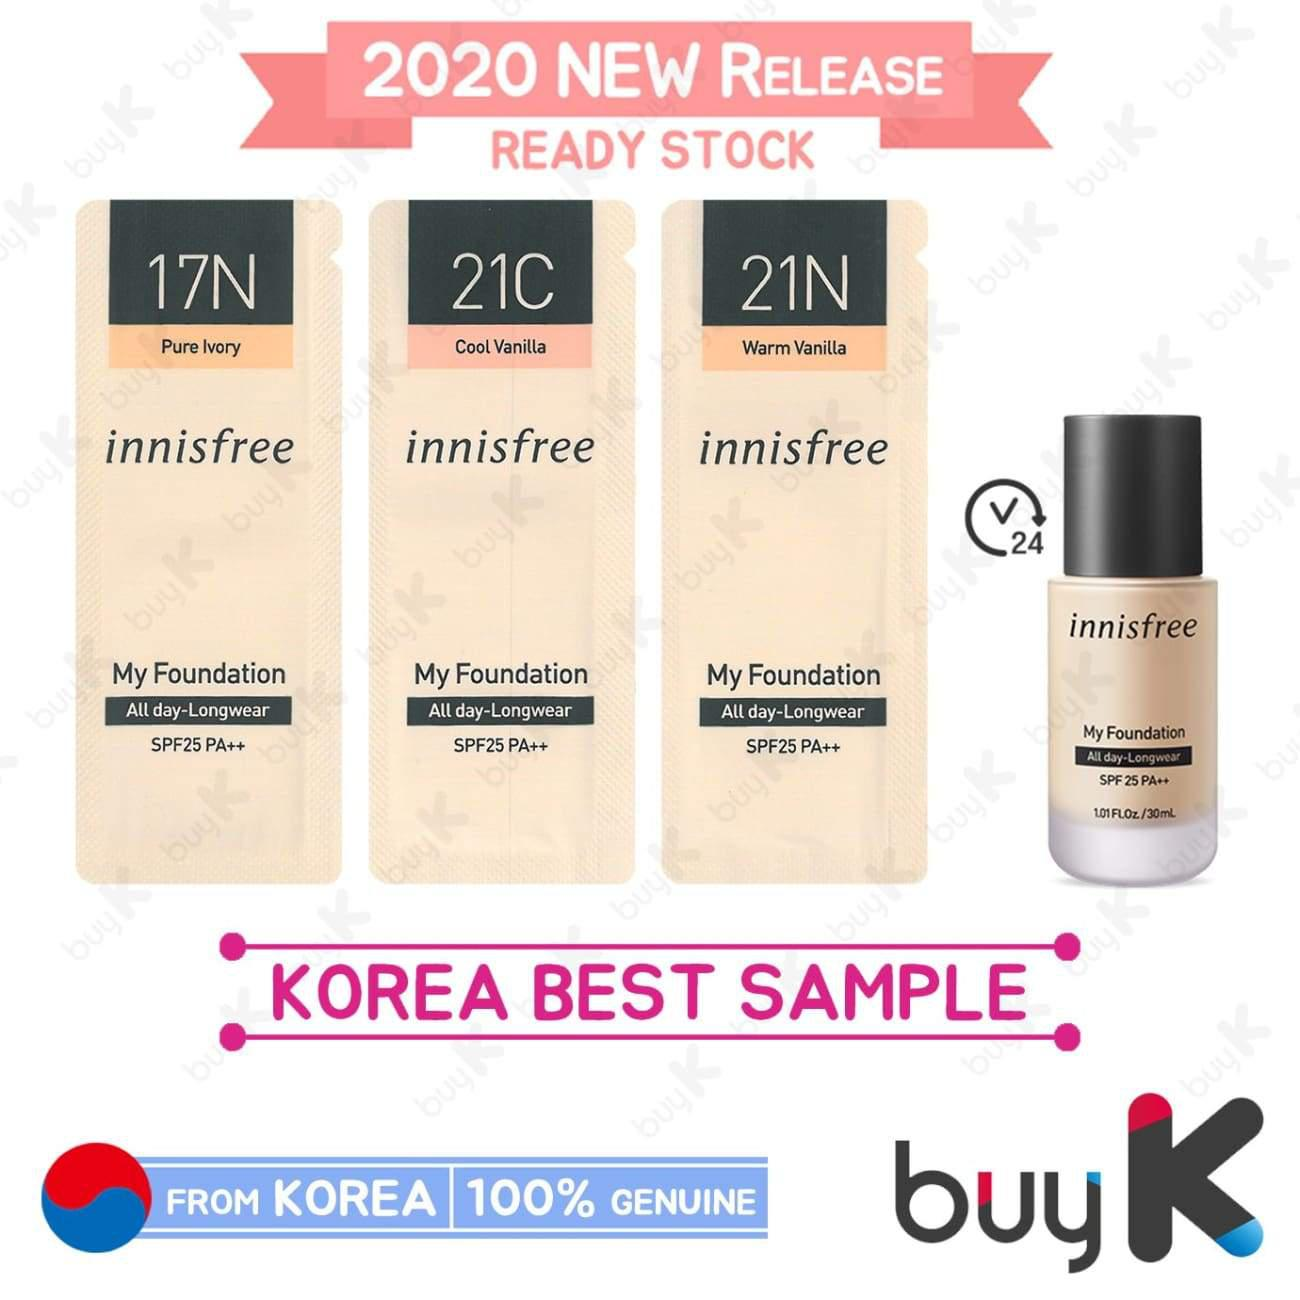 15pcs [INNISFREE] My Foundation [All day-Longwear] 1ml (17N, 21C, 21N)